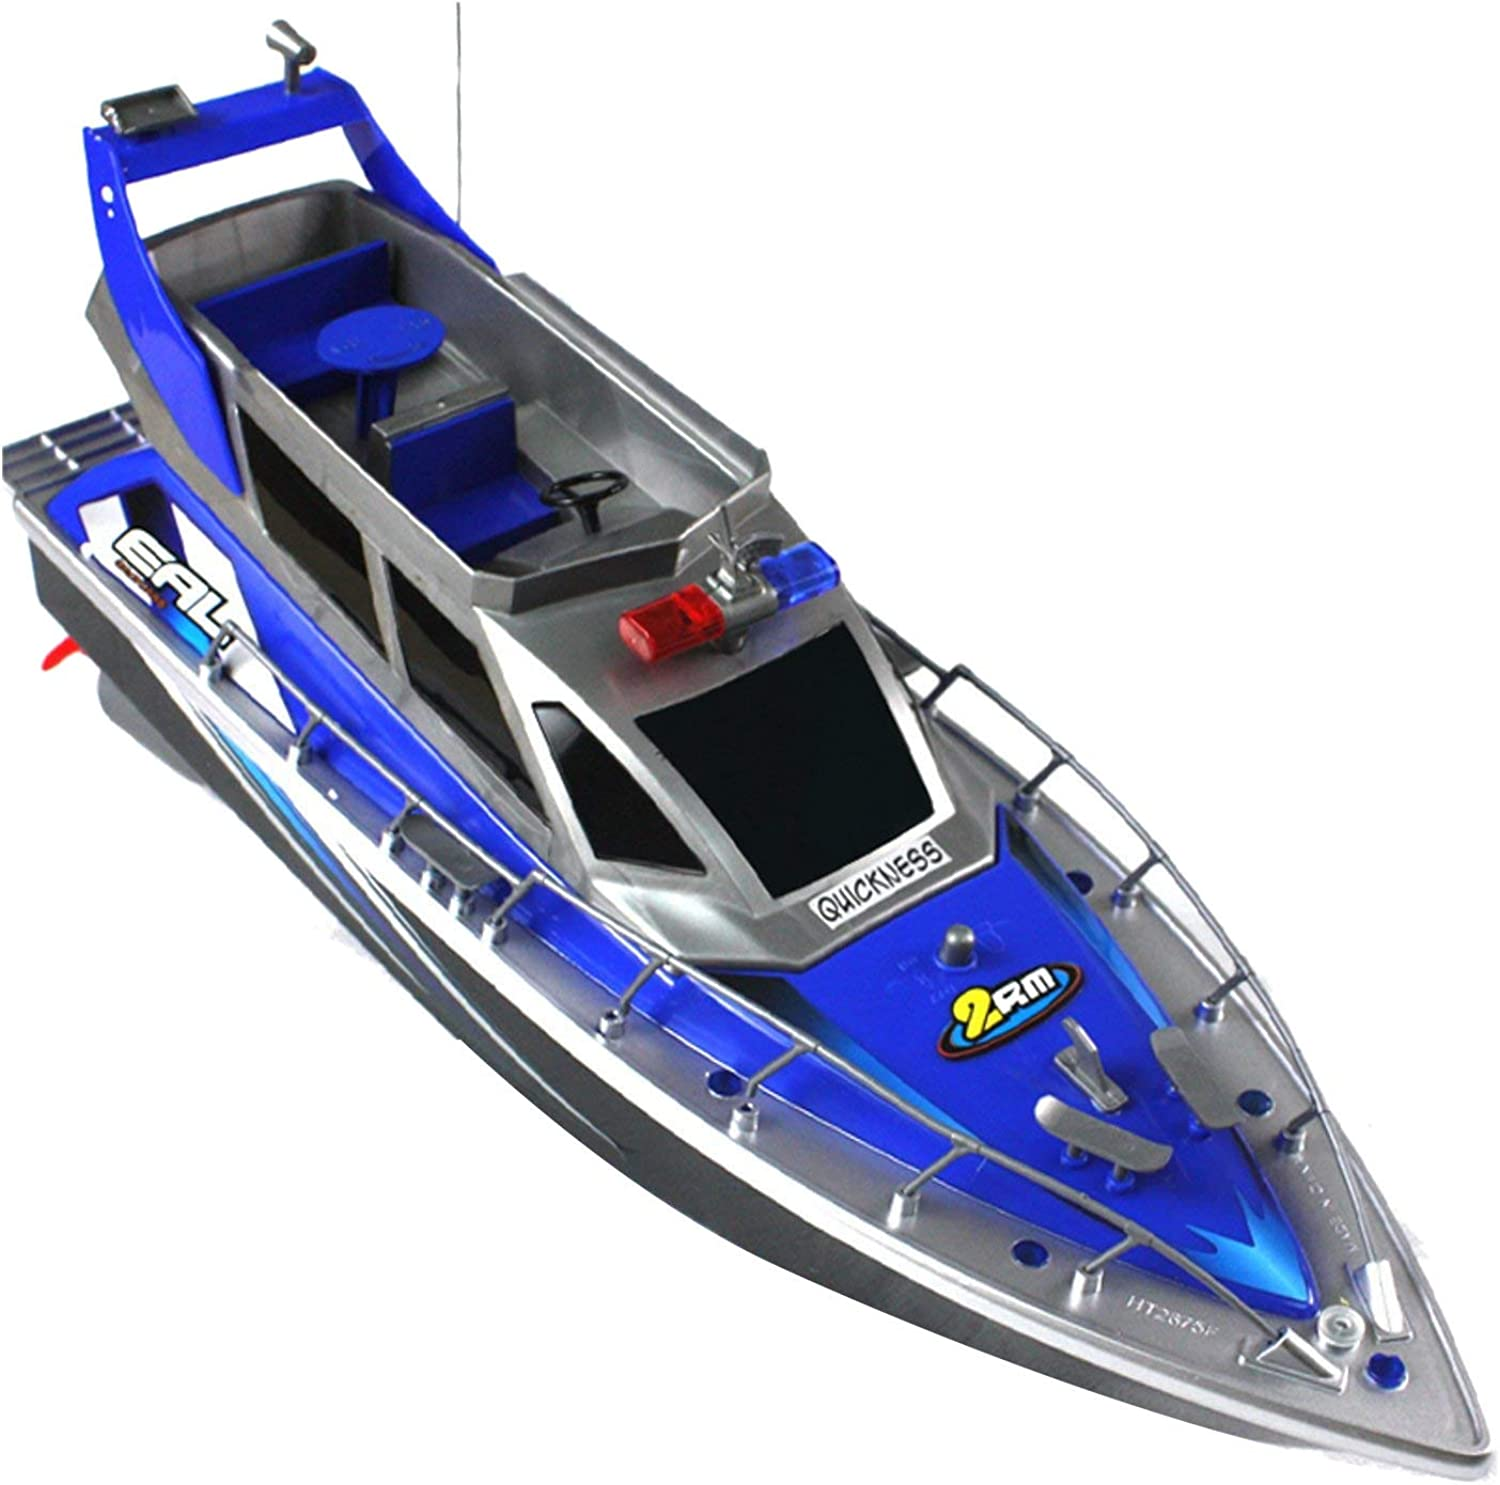 TOOGOO Police Remote Control Boat 1 20 Police Speed Boat Rc Boat Electric Full Function Large 4Channel Patrol Boat Remote Control Boat and Rechargeable Battery Set bluee